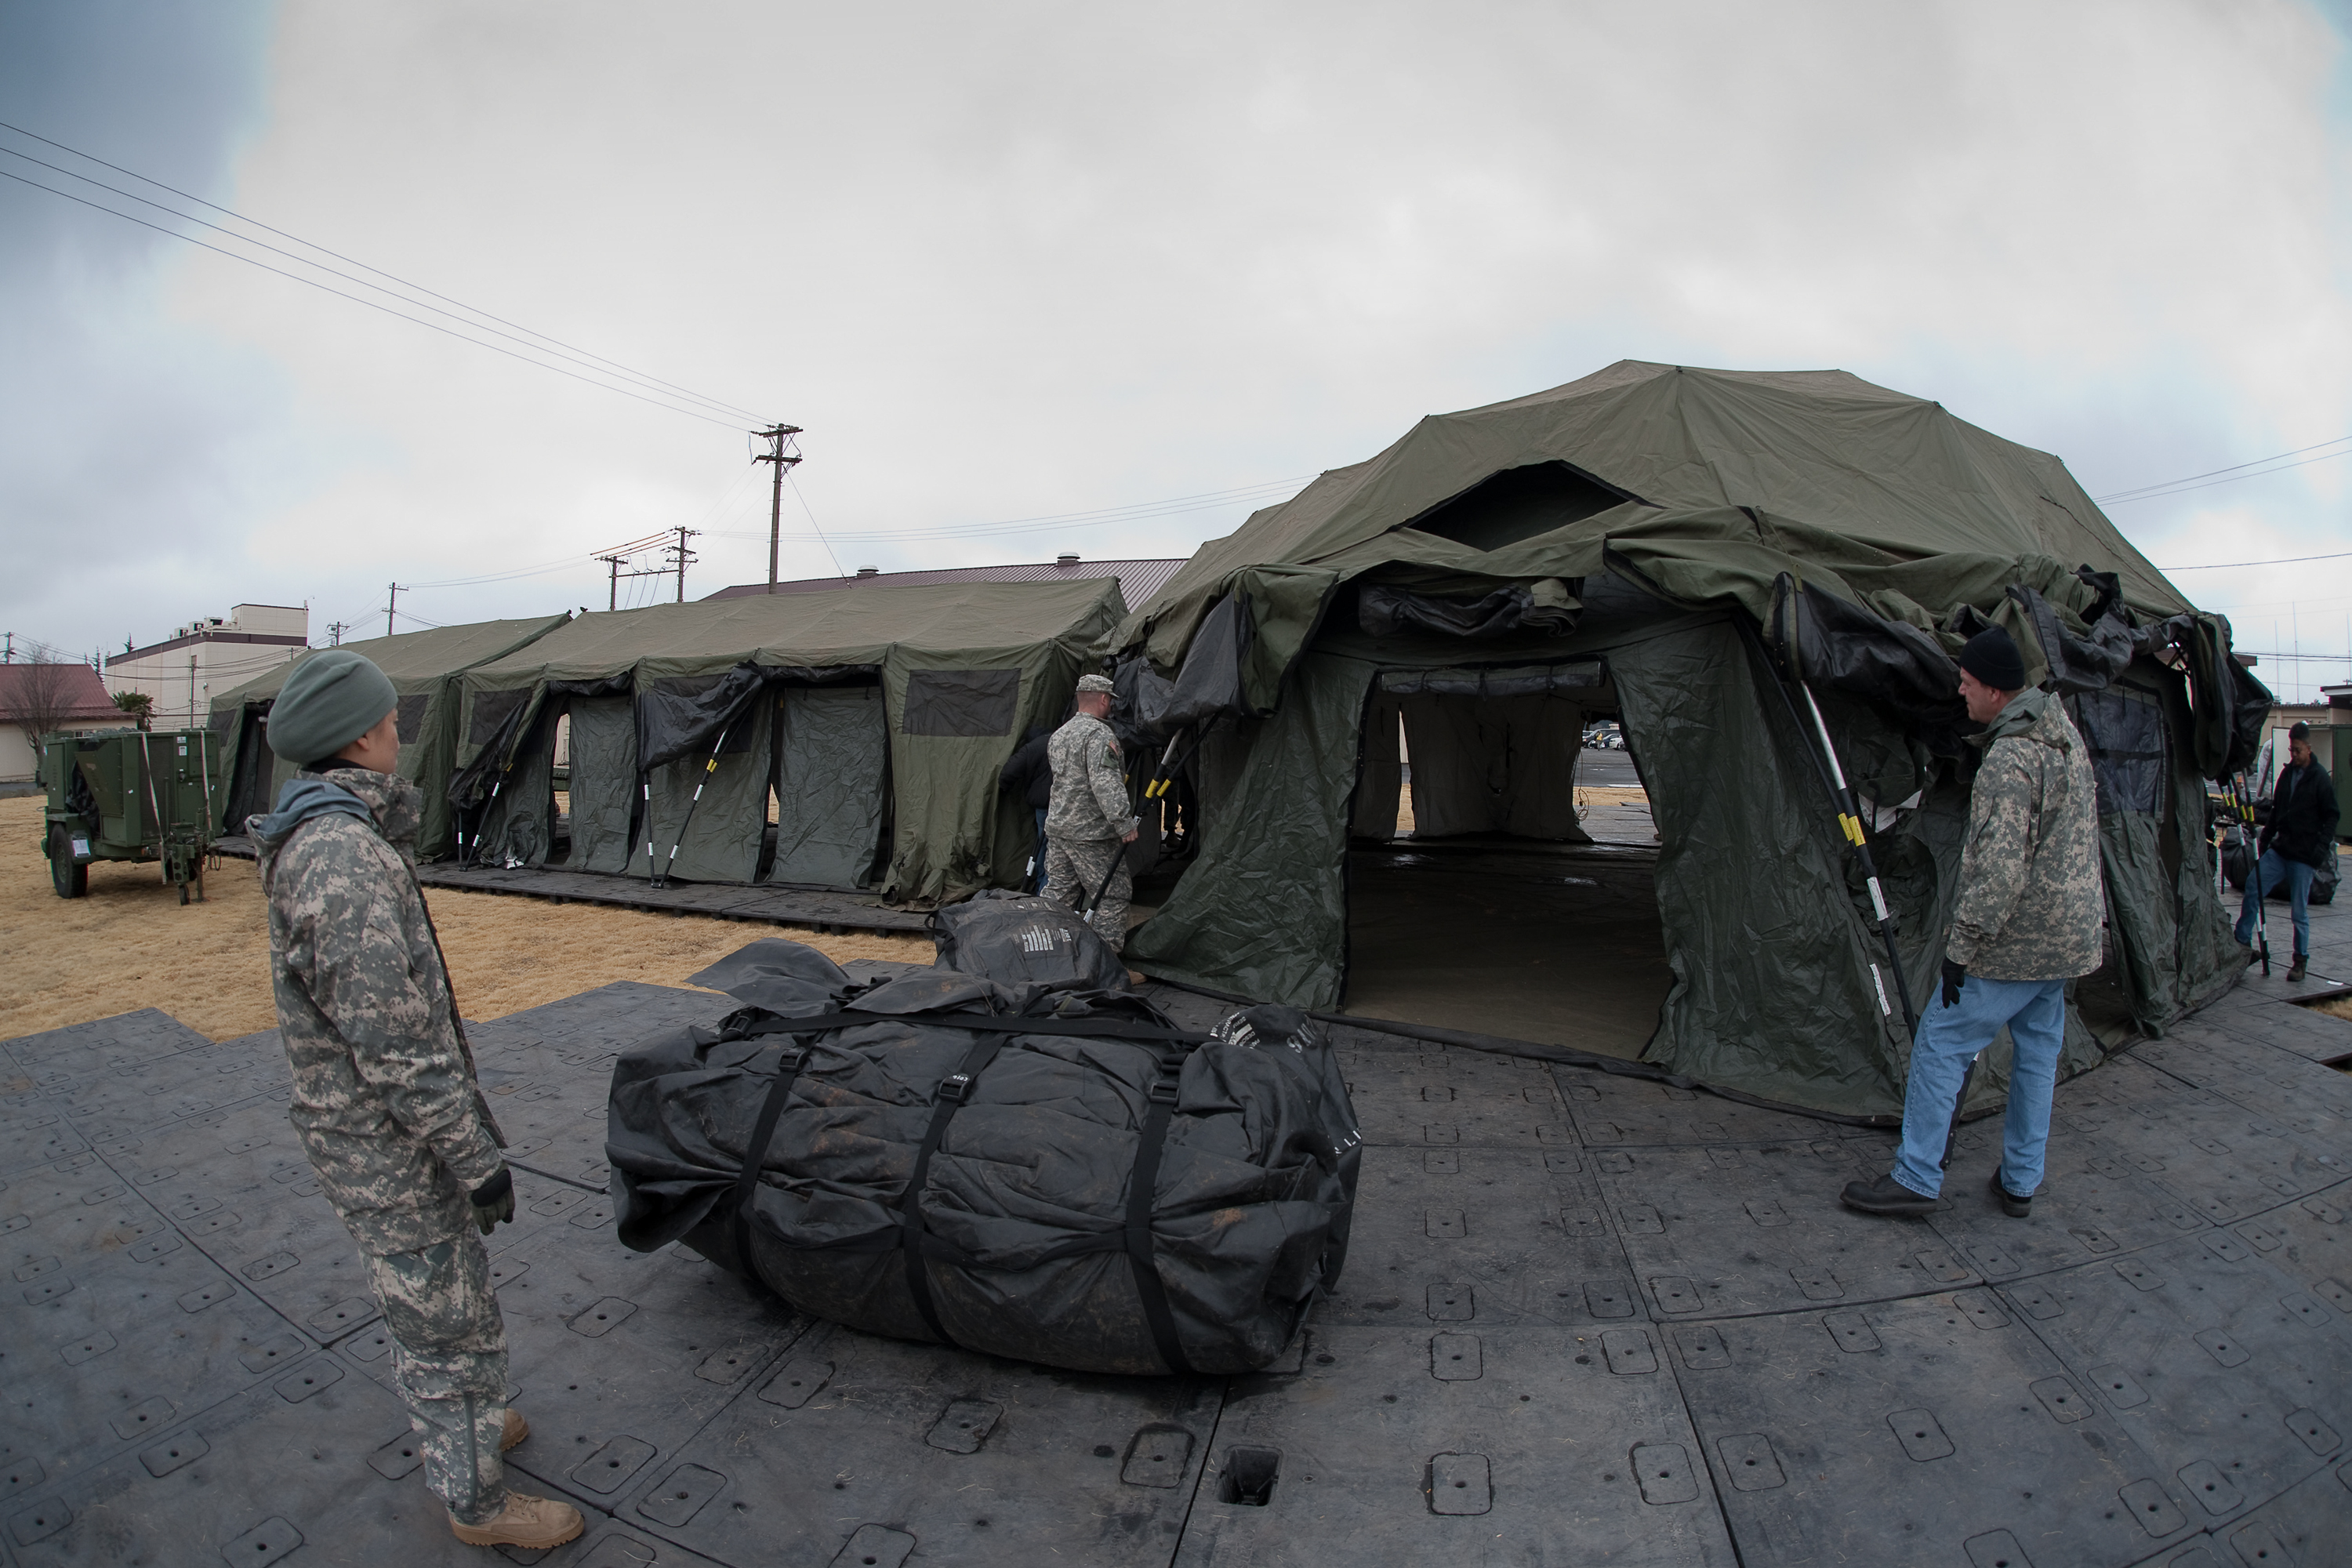 File:110322-F-PM645-065 build tents at Yokota jpg